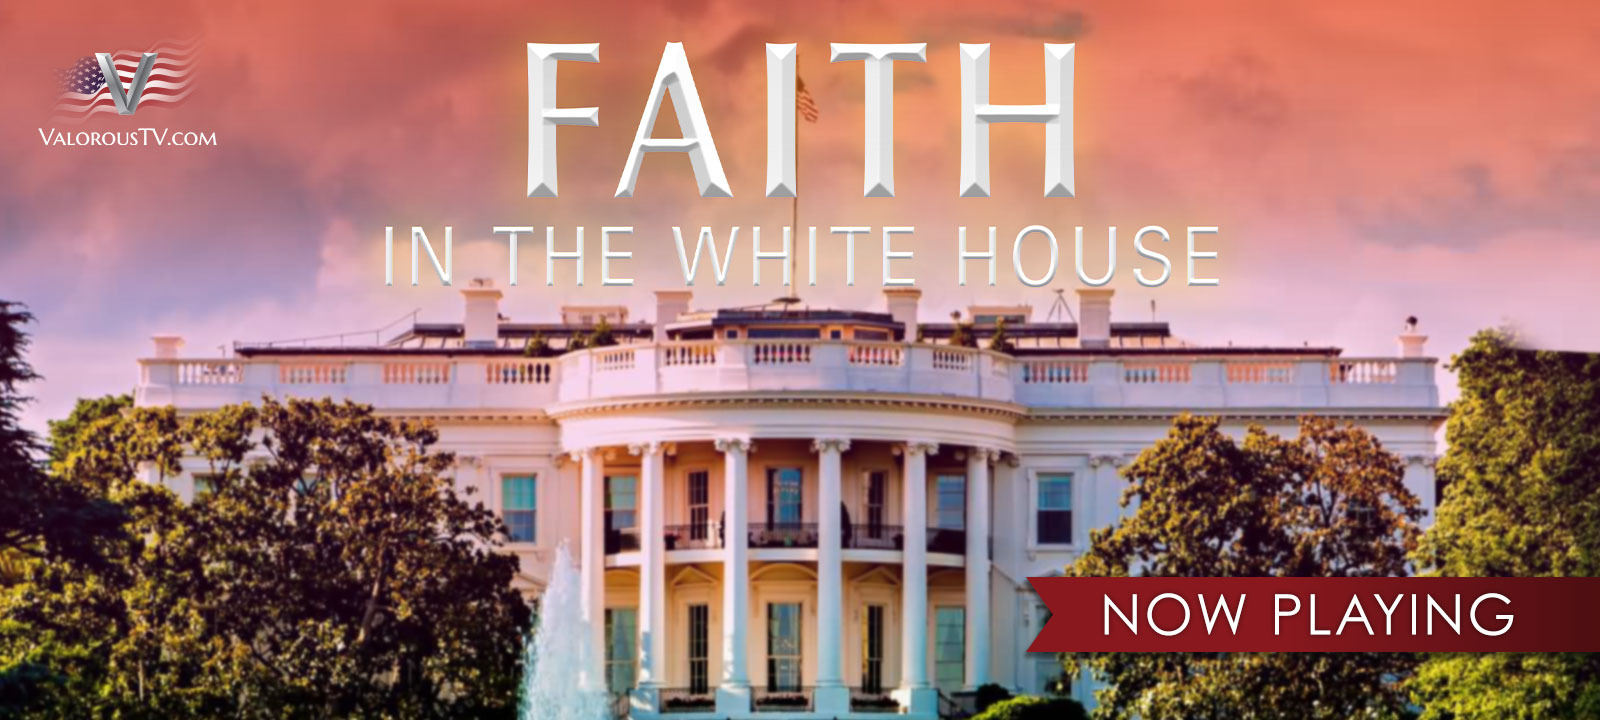 faithinthewhitehouse_slider